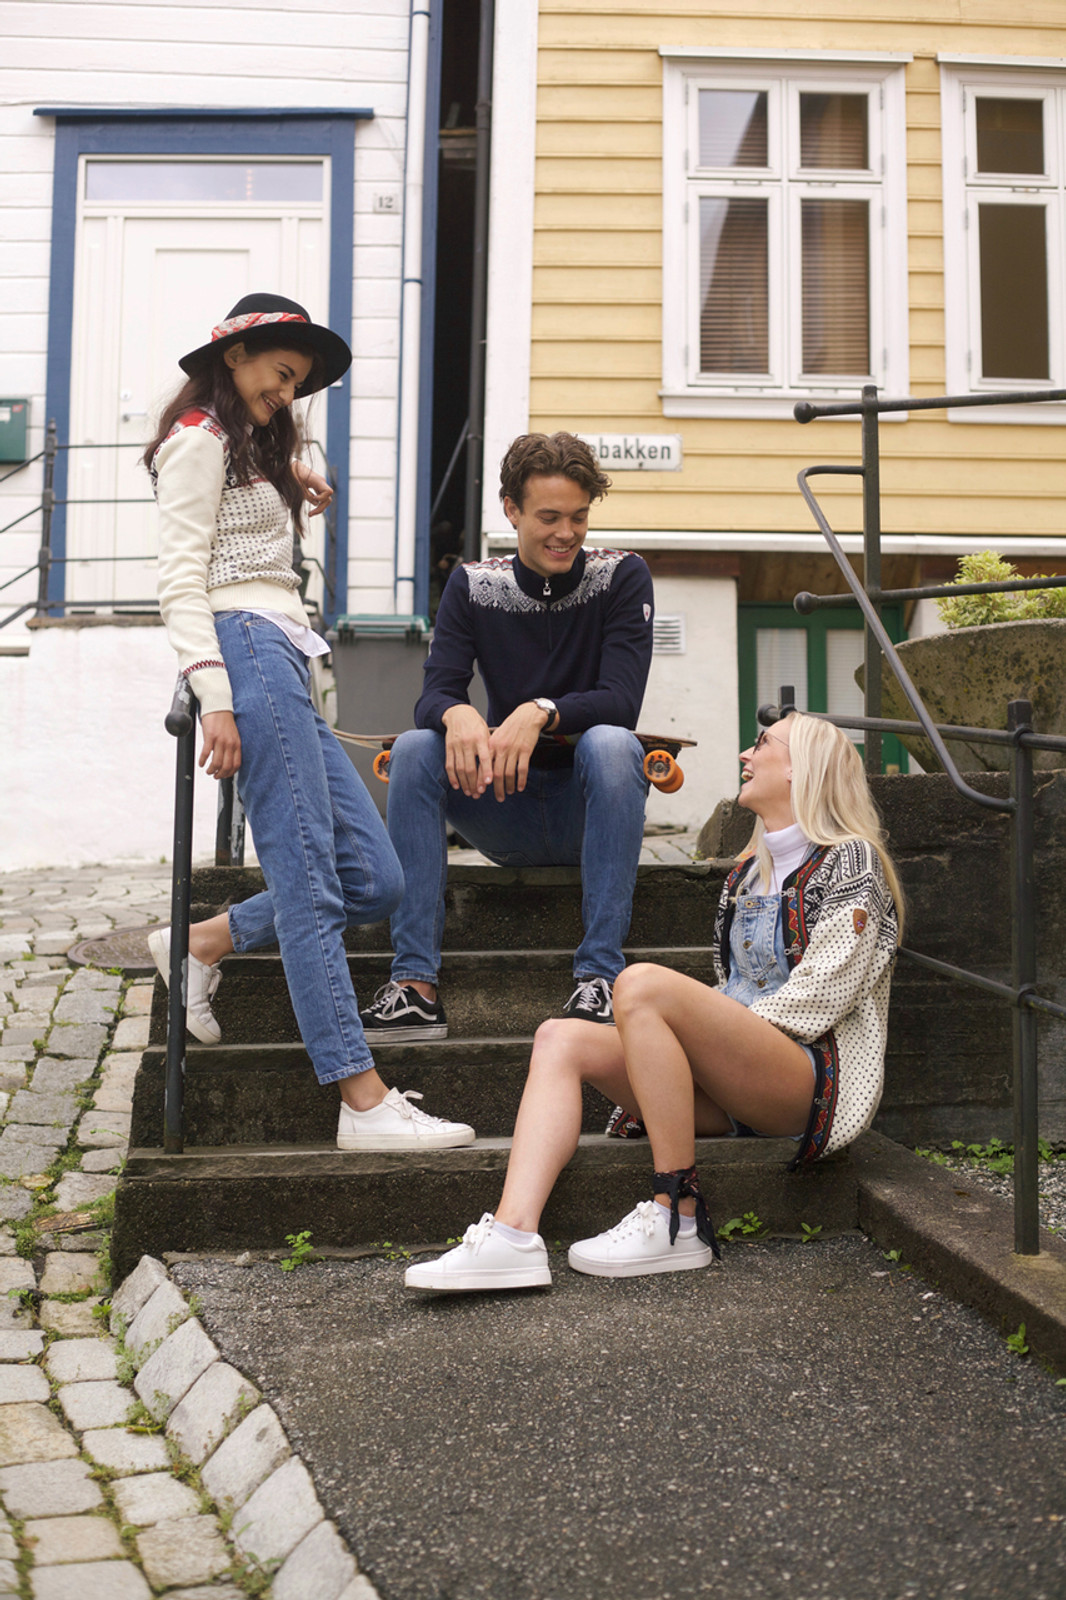 Group of friends wearing Dale of Norway mens Fiemme Sweater in Dark Charcoal/Grau Vig/Raspberry/Off White, 93421-T, new unisex Setesdal cardigan in Off White/Black, 83291-A, and Garmisch ladies sweater in Off White/Navy/Raspberry, 92601-A